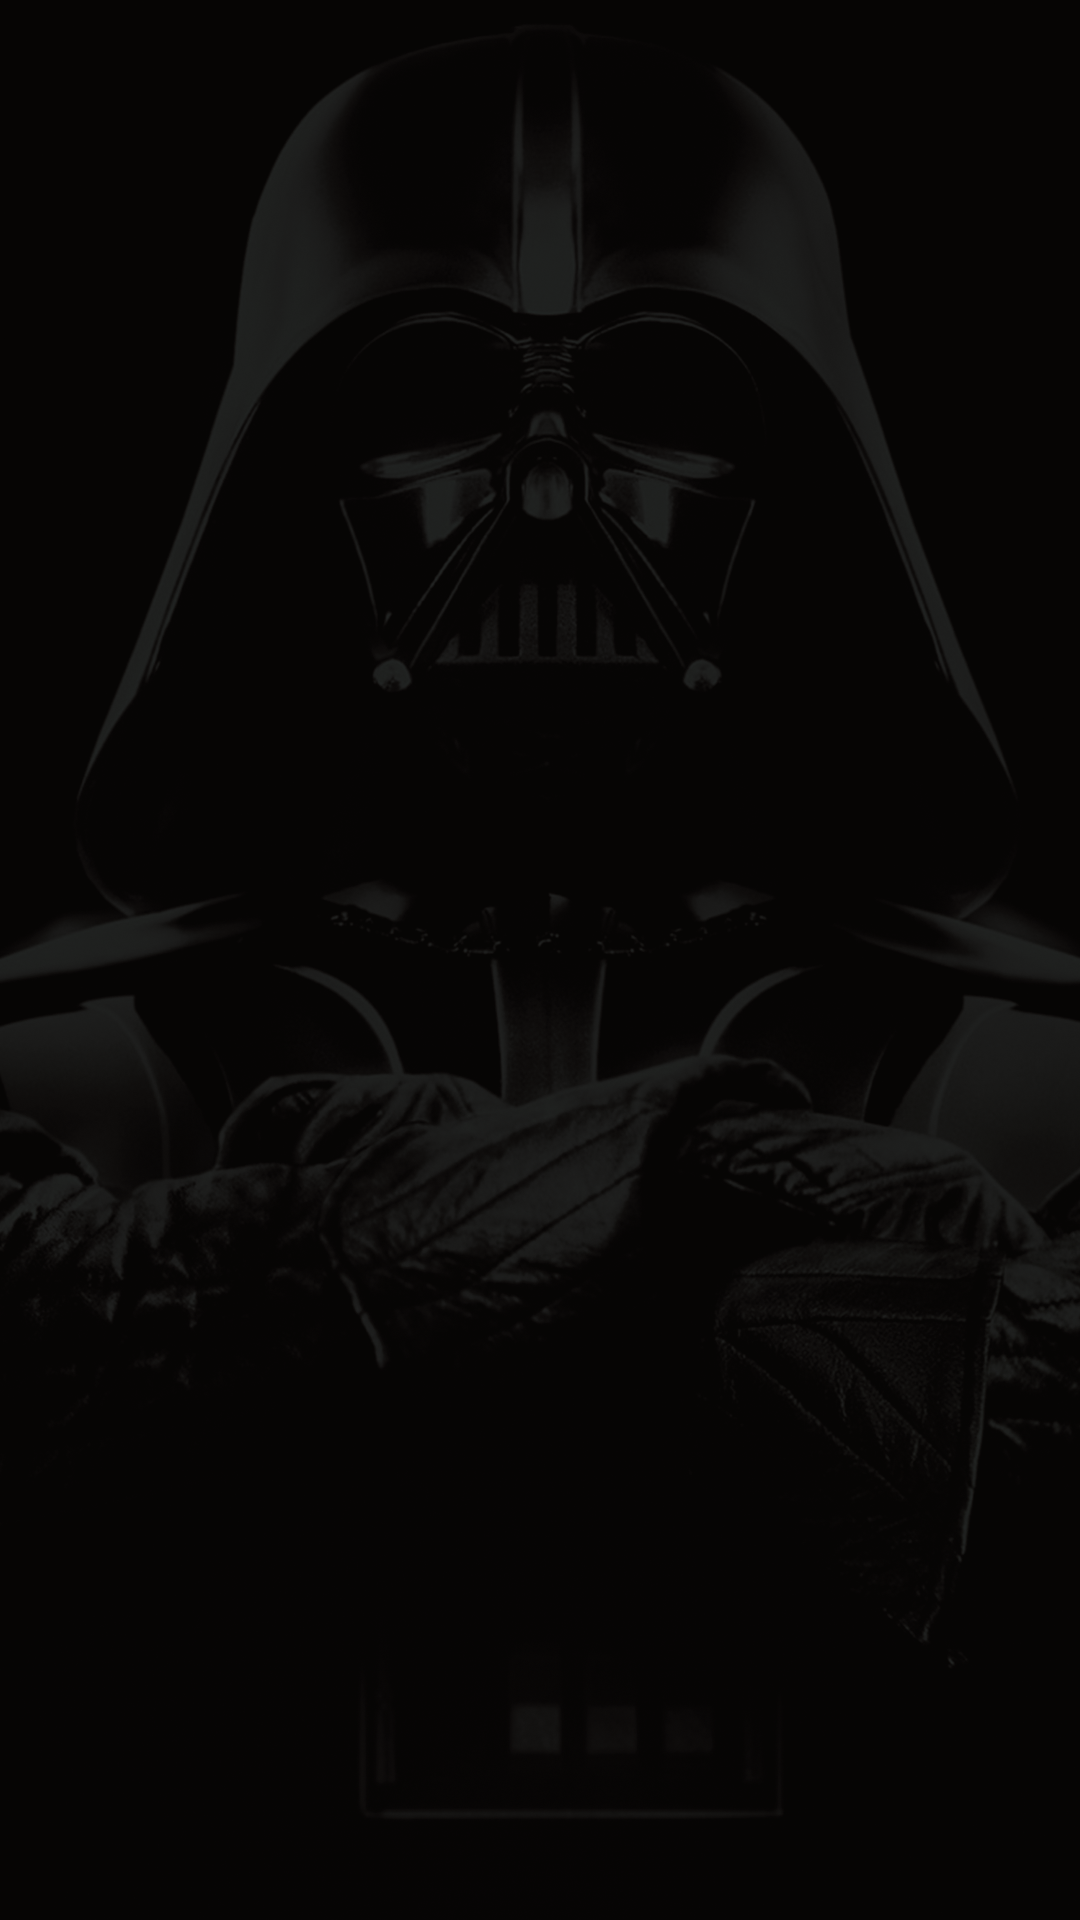 Darth Vader Black 1080 X 1920 FHD Wallpaper